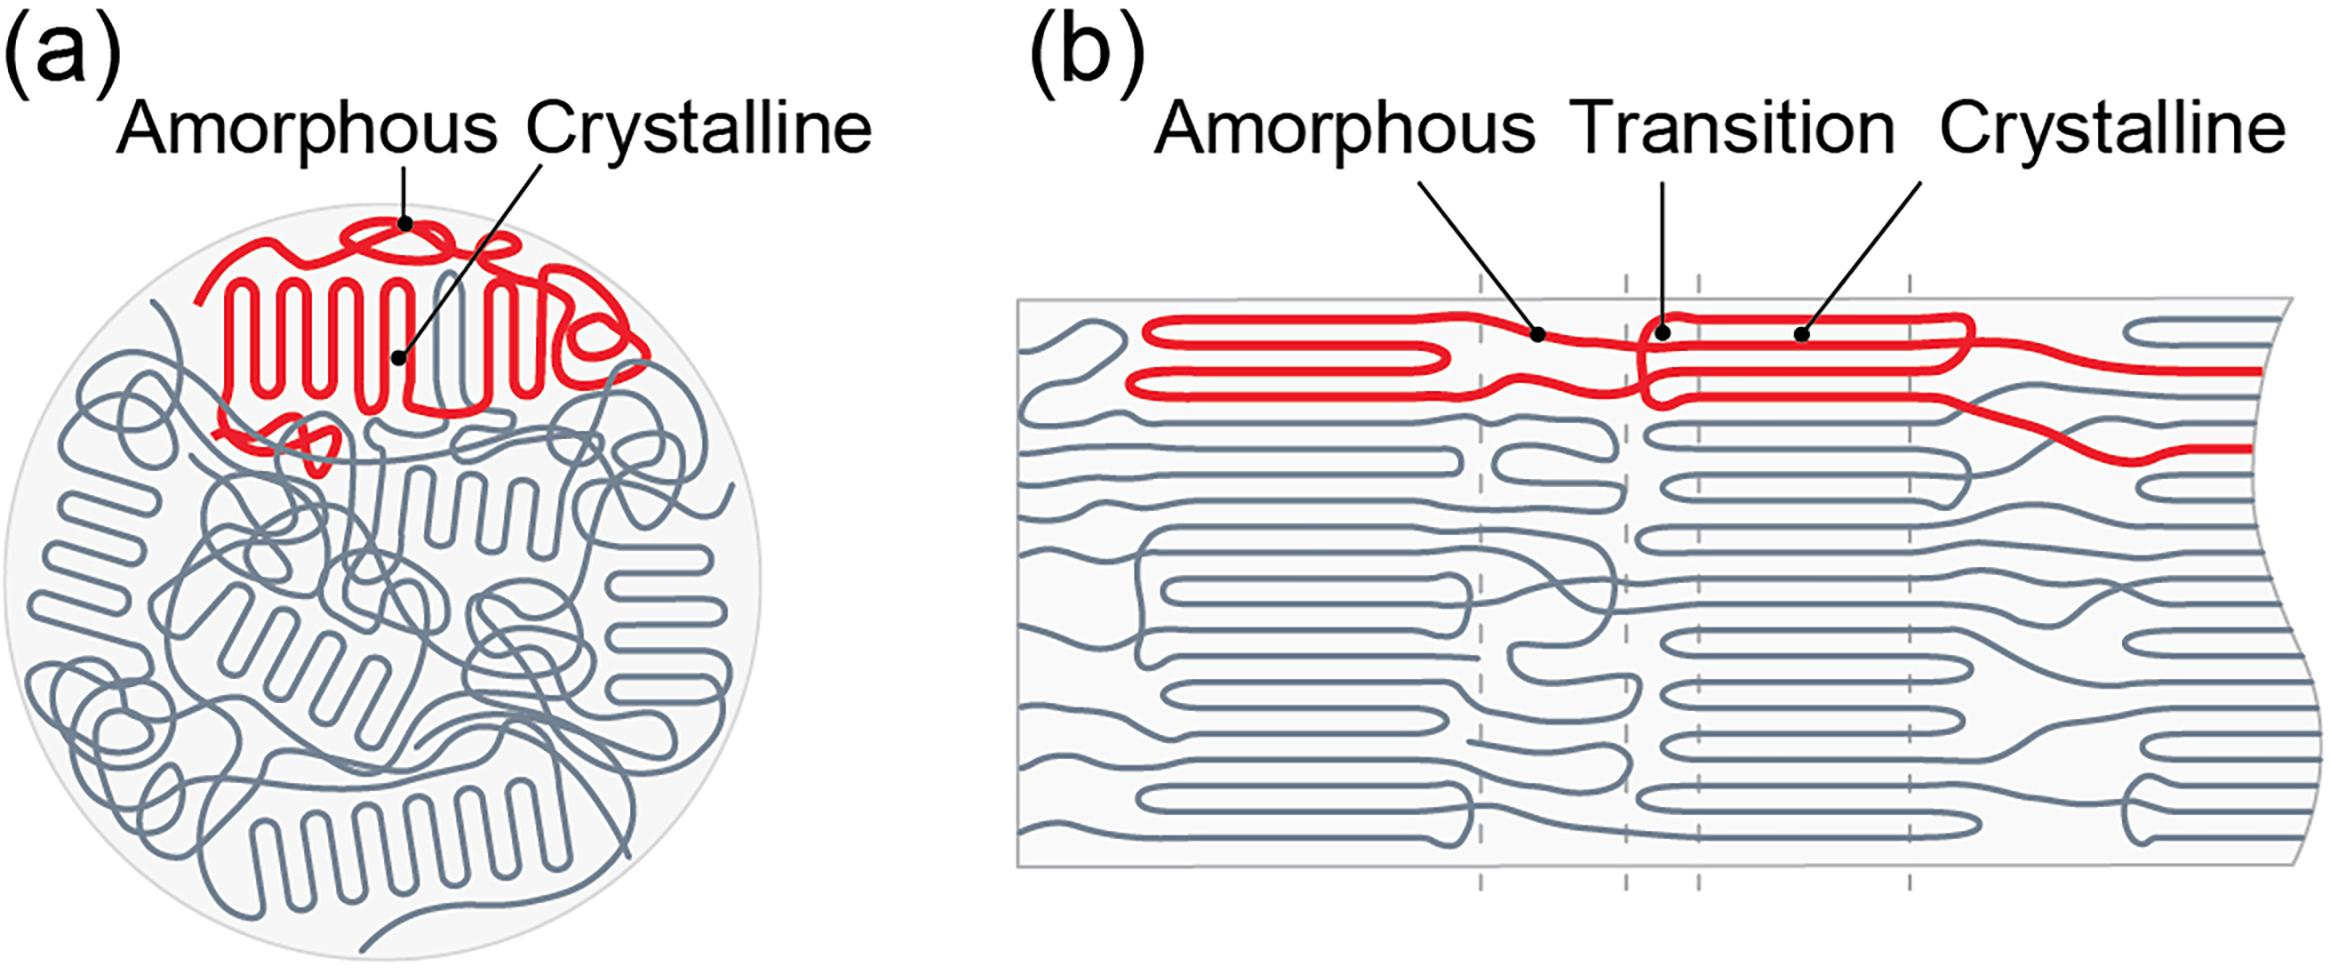 This tangled mass includes coils, snarls and knots that prevent efficient heat transfer (figure a). When the researchers discovered how to engineer these tangled chains, and transform them into long aligned strands that are ordered (figure b), the conductivity increased sharply.